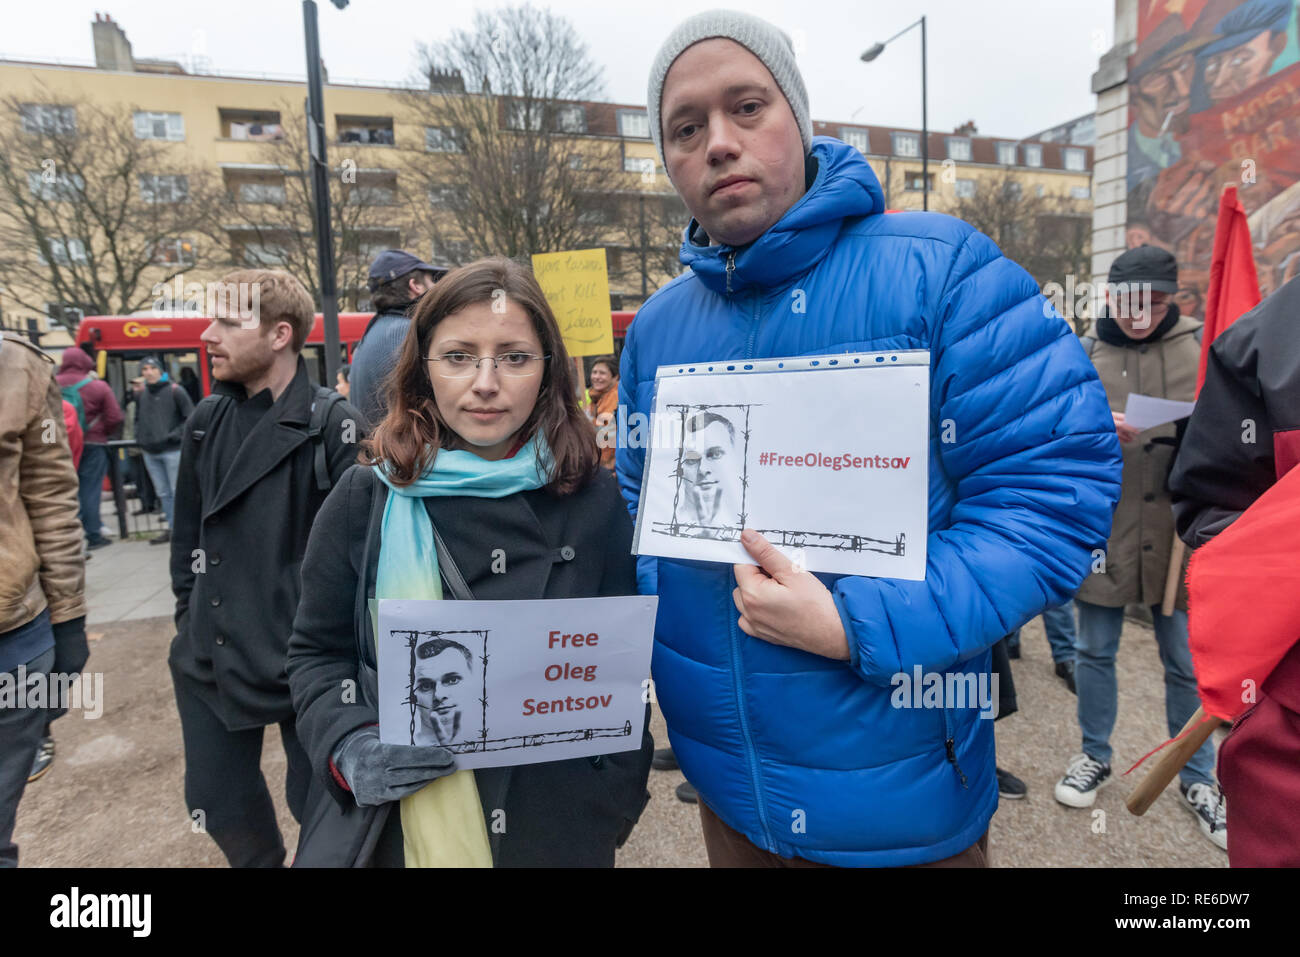 London, UK. 19th January 2019. Ukrainians hold posters of improsione anti-fascist Oleg Sentsov at the Cable St rally to oppose Stanislav Markelovracism, xenophobia, fascism and the upsurge of far-right populism and to show solidarity with Russian anti-fascists who have been arrested, framed and tortured in a brutal wave of repression.  jail for five to twenty years. The rally took place on the anniversary of the brutal murder on the street by fascists of two Russian anti-fascists Credit: Peter Marshall/Alamy Live News - Stock Image